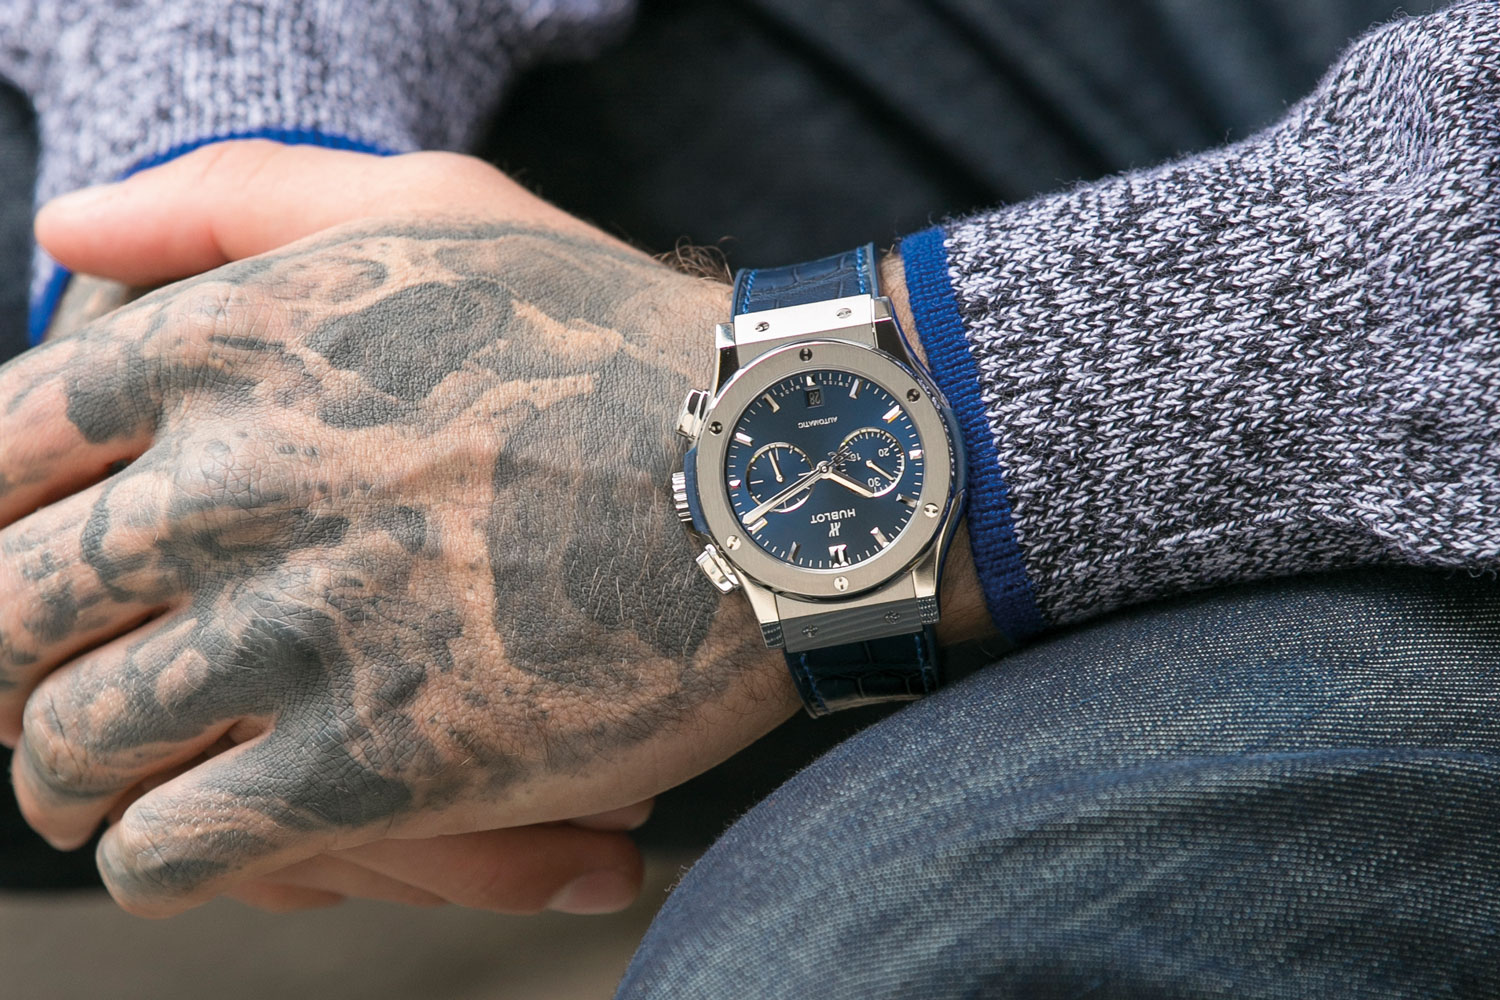 Hublot Classic Fusion Blue Watch Review